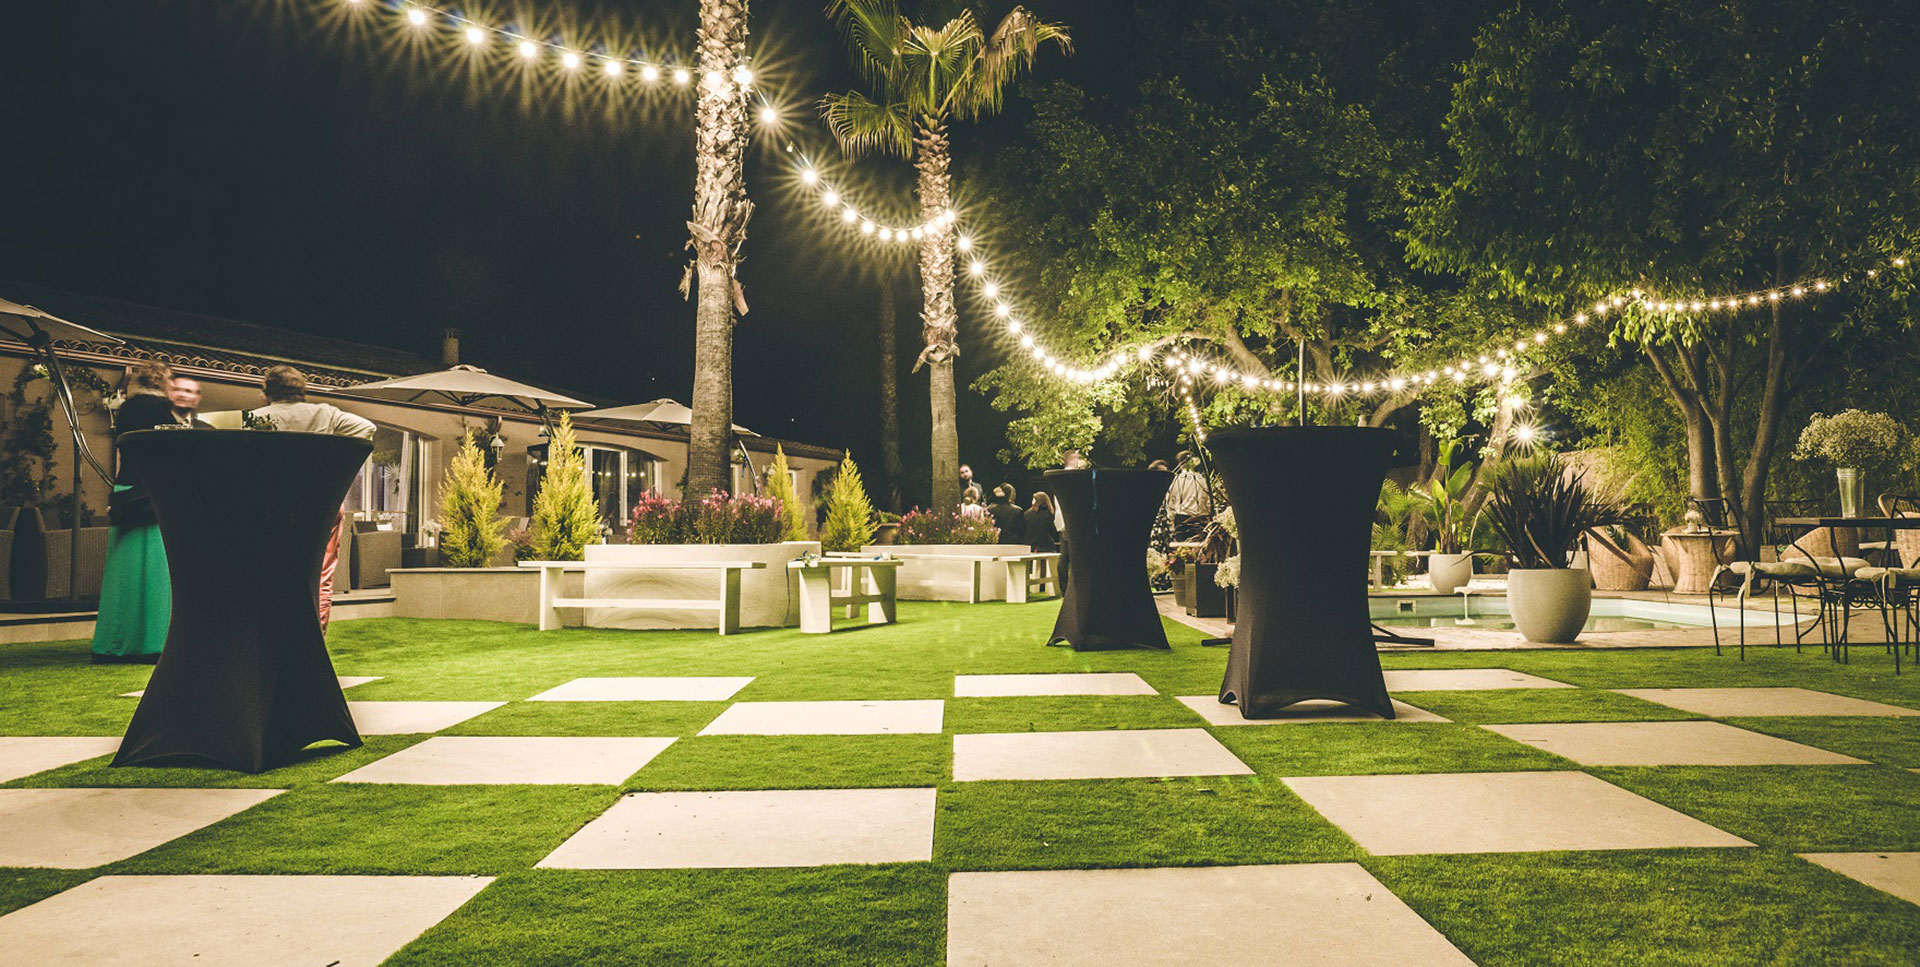 Location Salle Mariage 06 Var 83 Cannes Nice Antibes 2